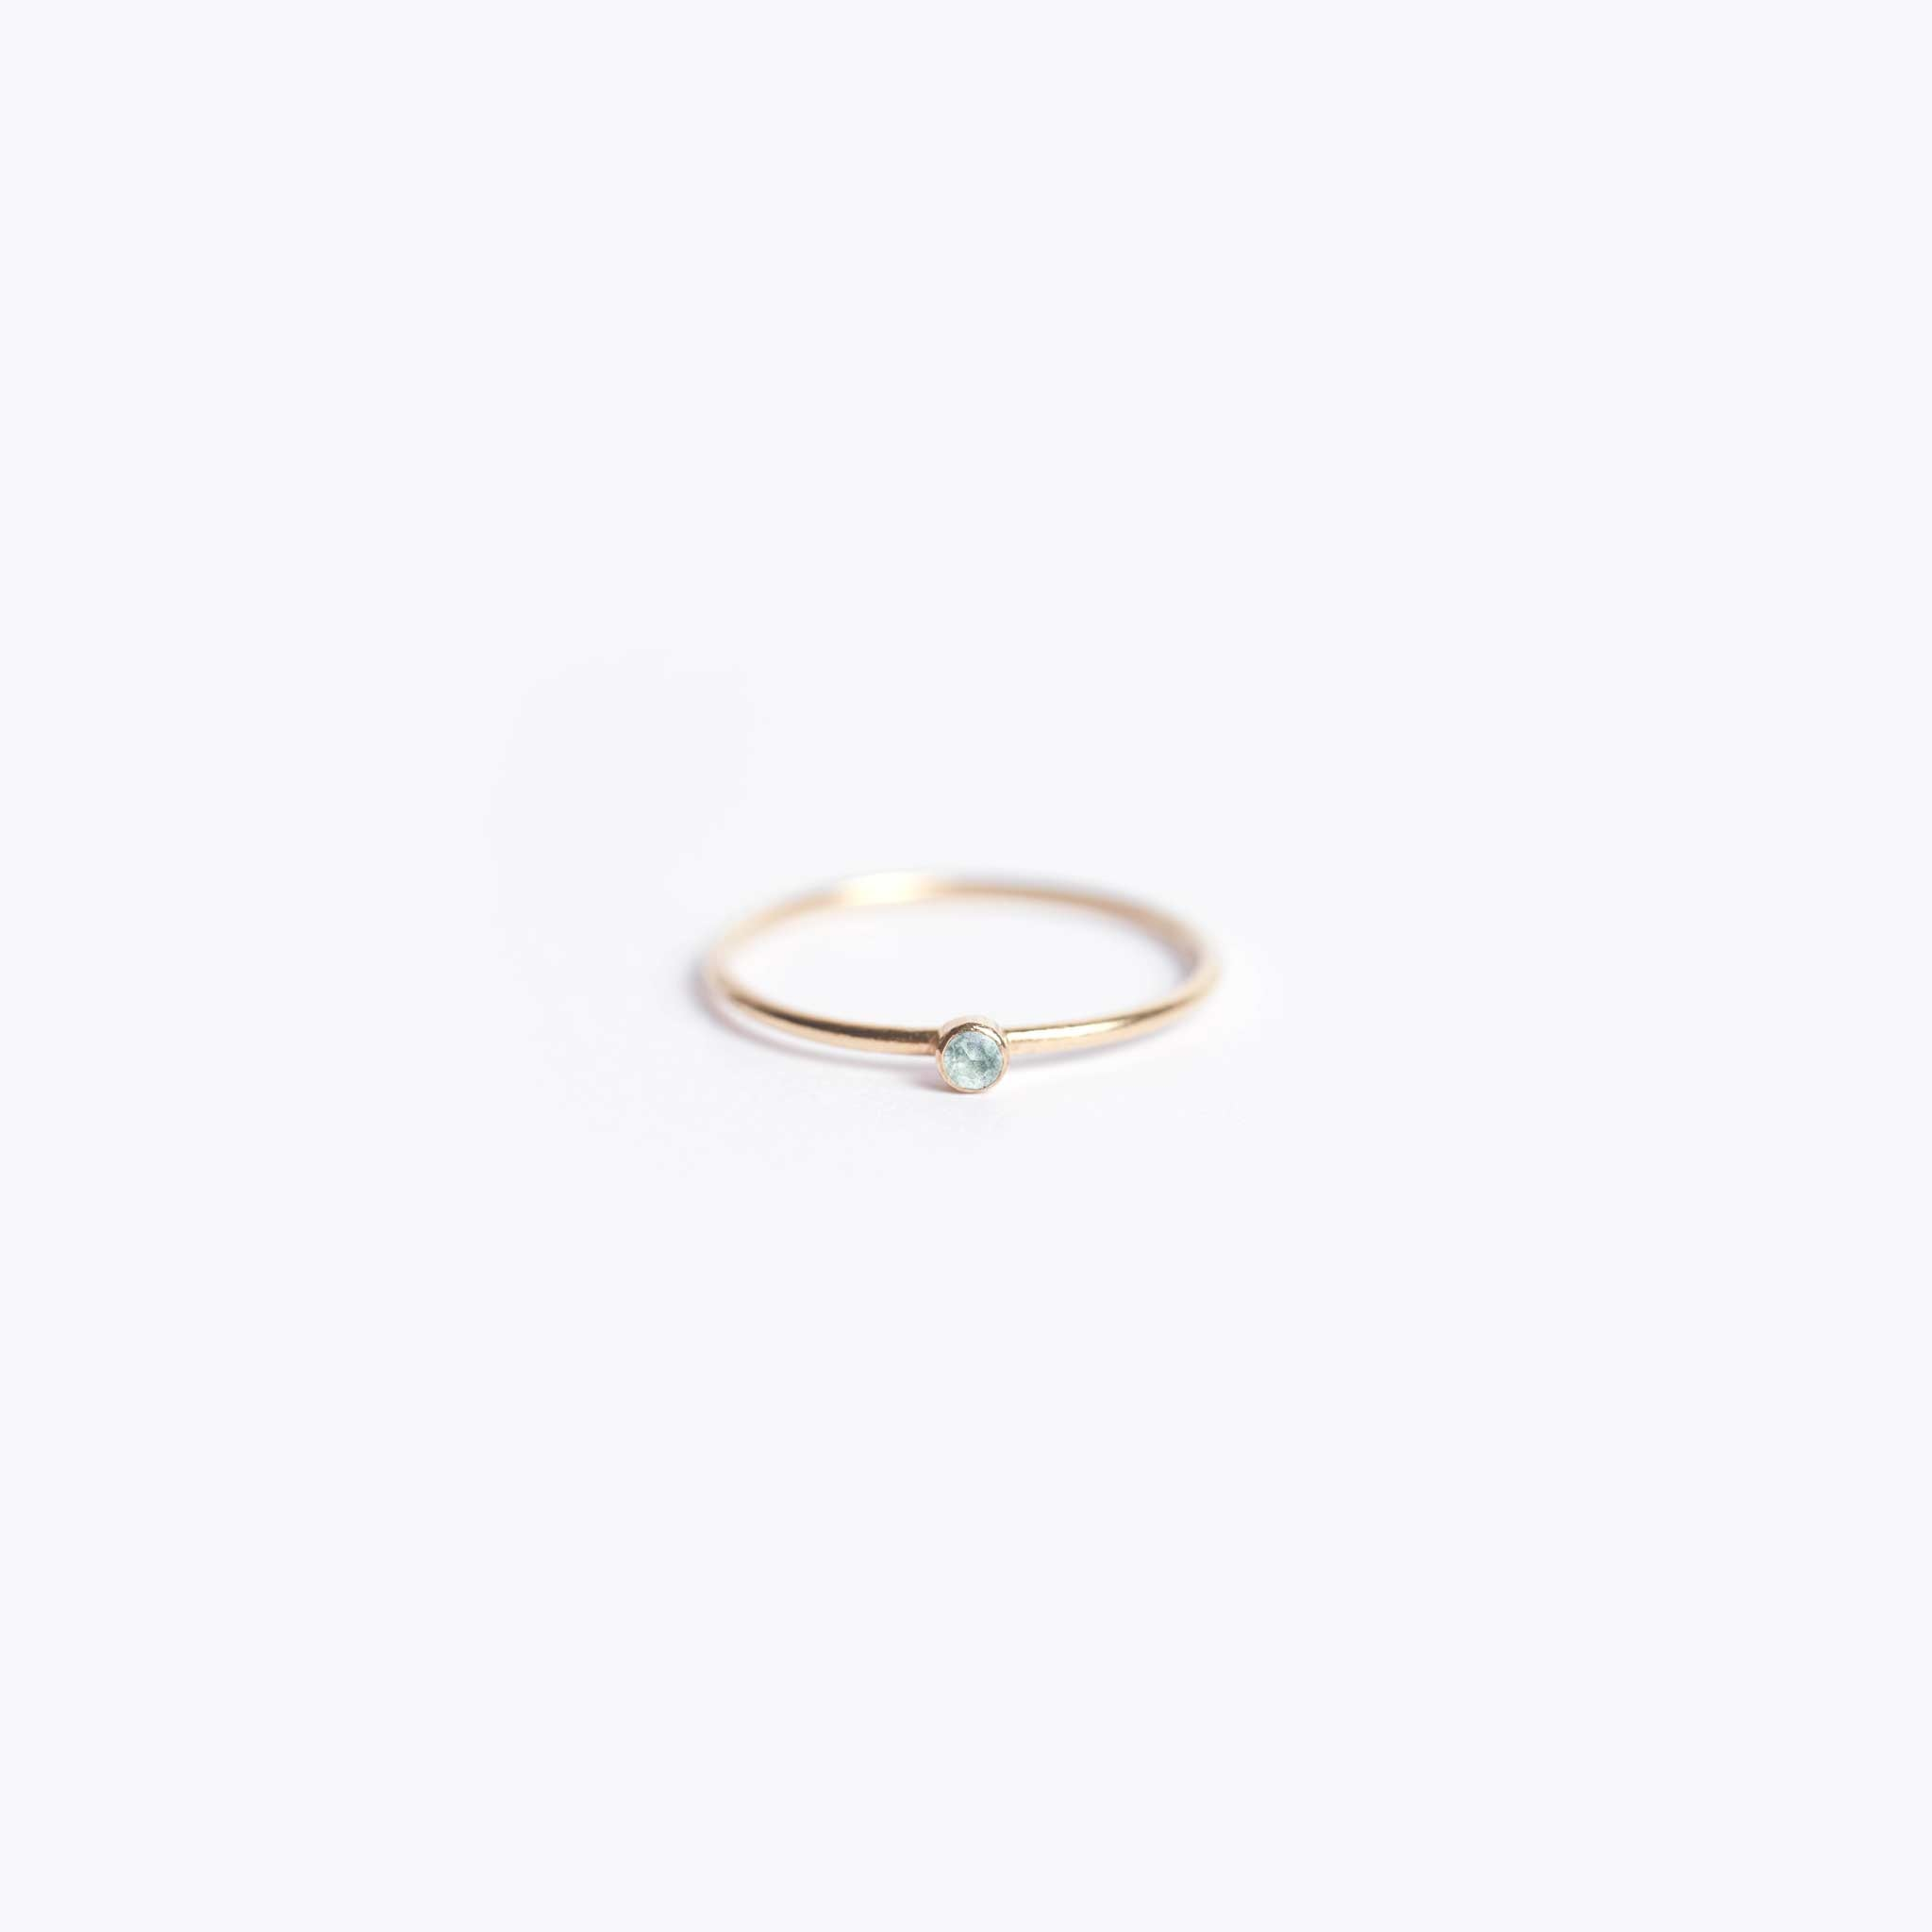 Wanderlust Life Ethically Handmade jewellery made in the UK. Minimalist gold and fine cord jewellery. march birthstone, fine gold aquamarine ring